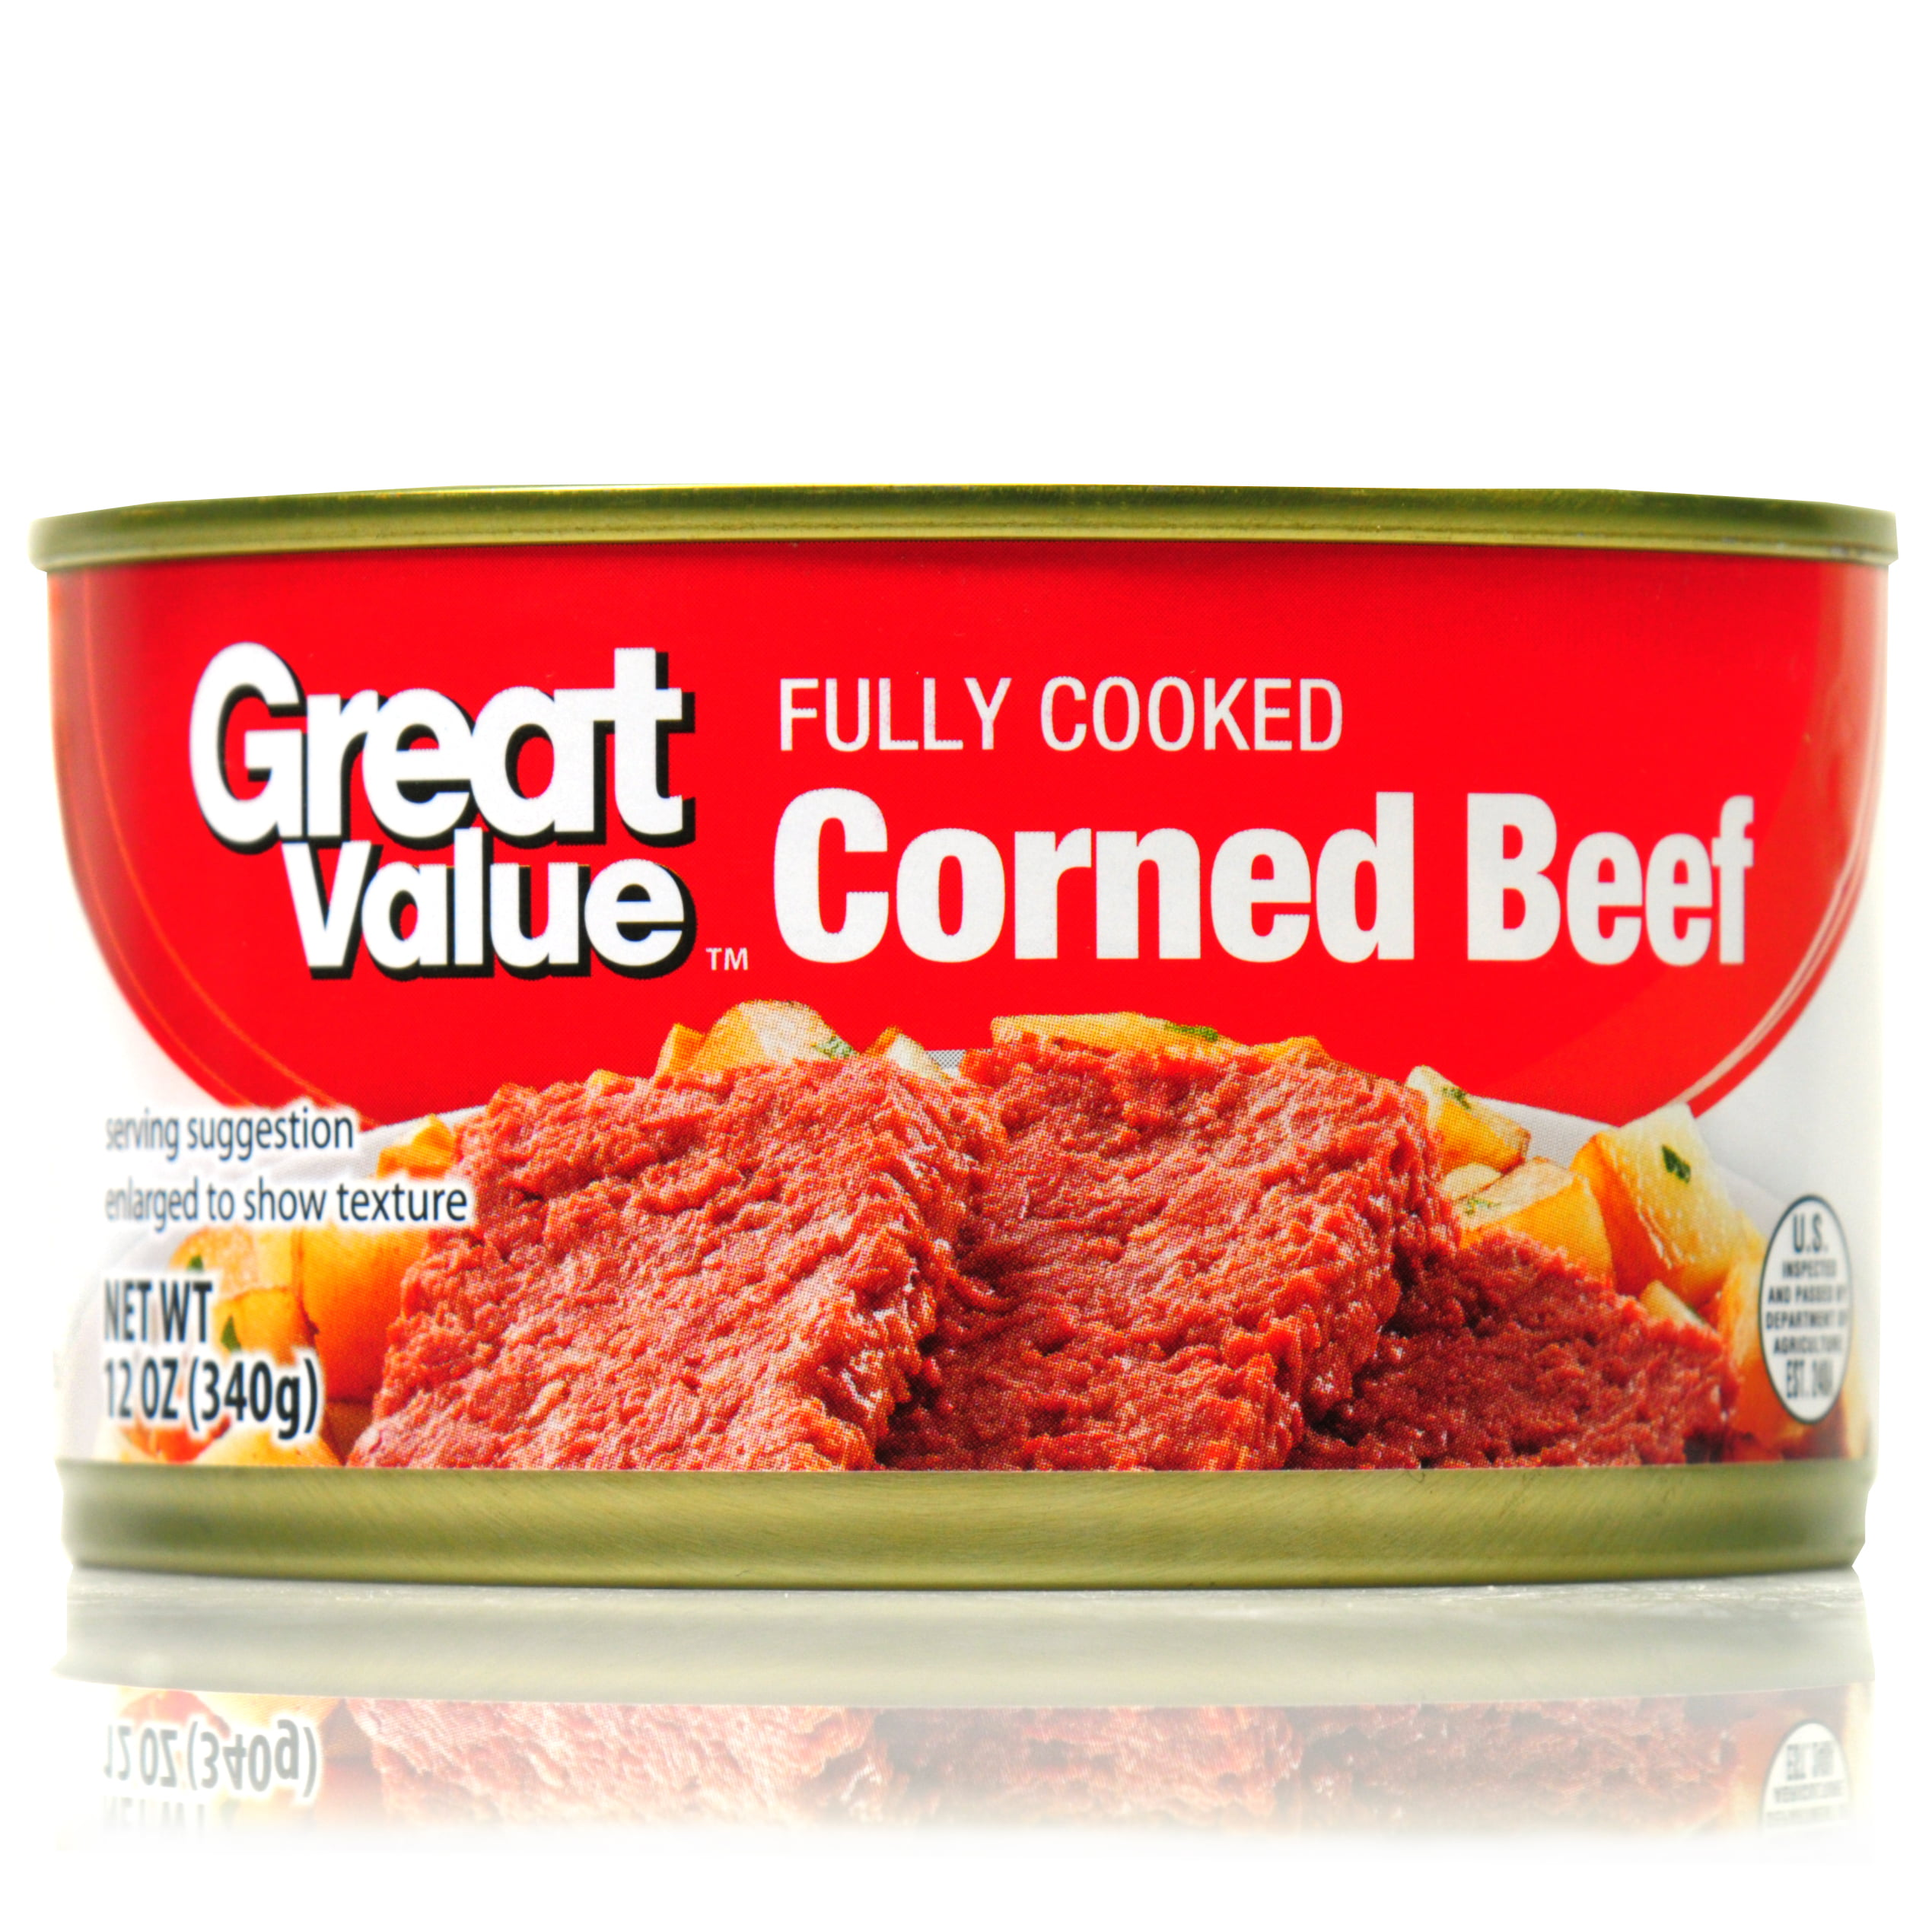 Great Value Corned Beef, 12 oz by Wal-Mart Stores, Inc.